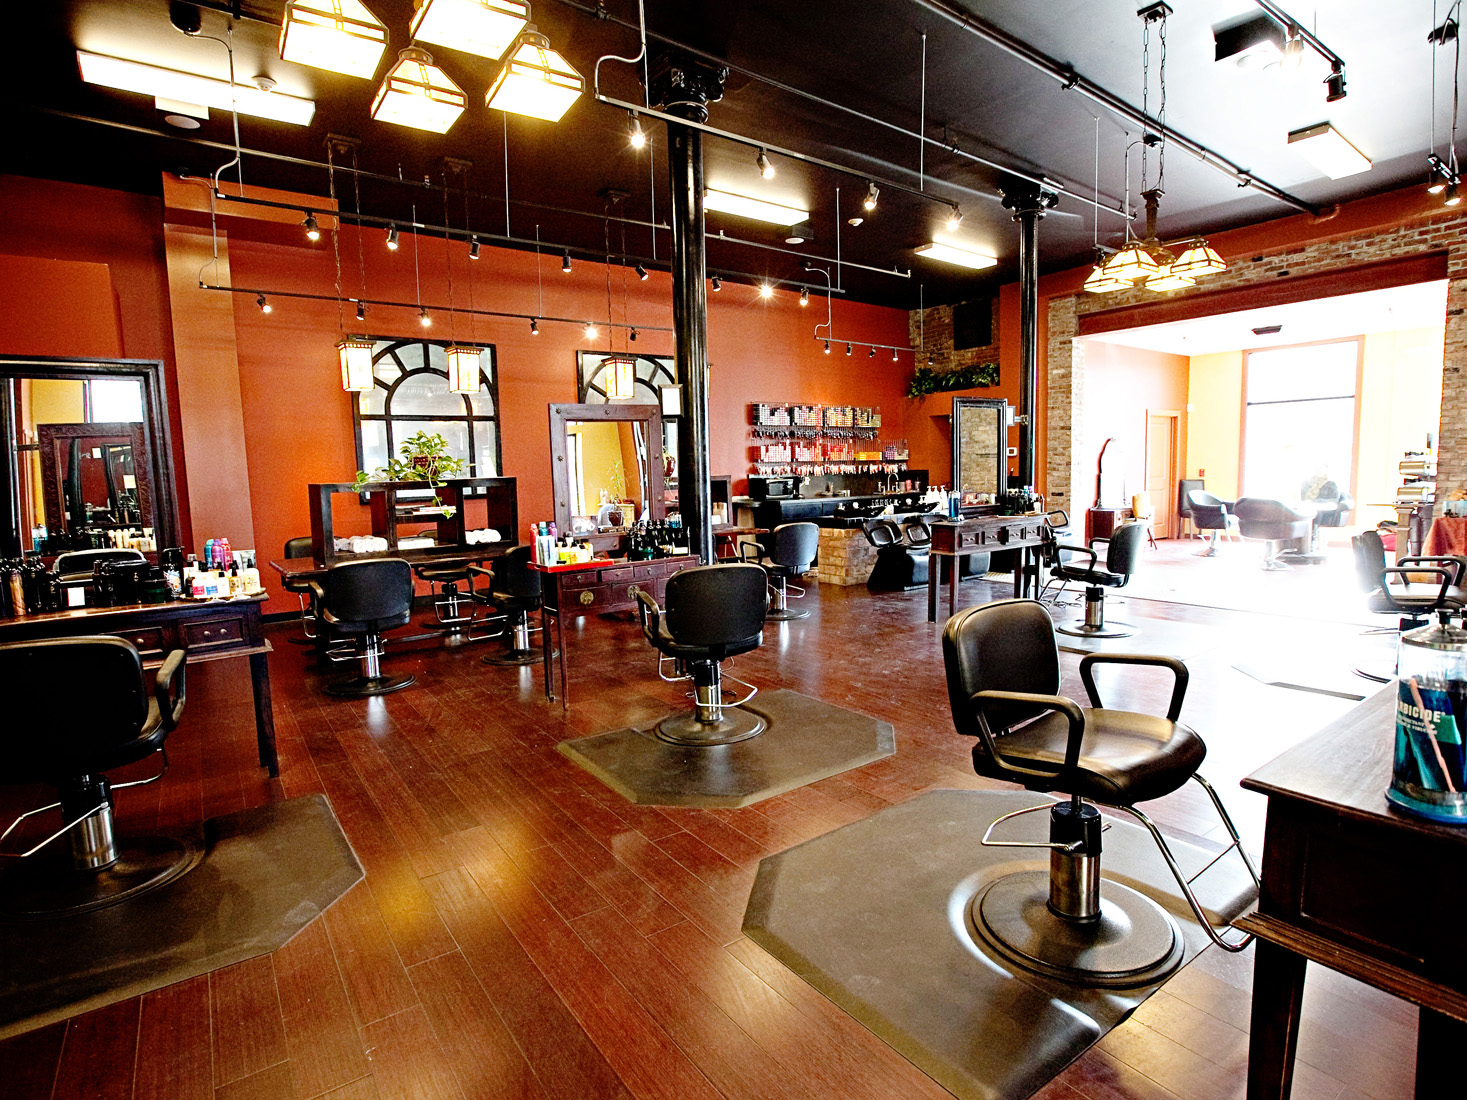 Bella Luci Salon in Poughkeepsie, NY.